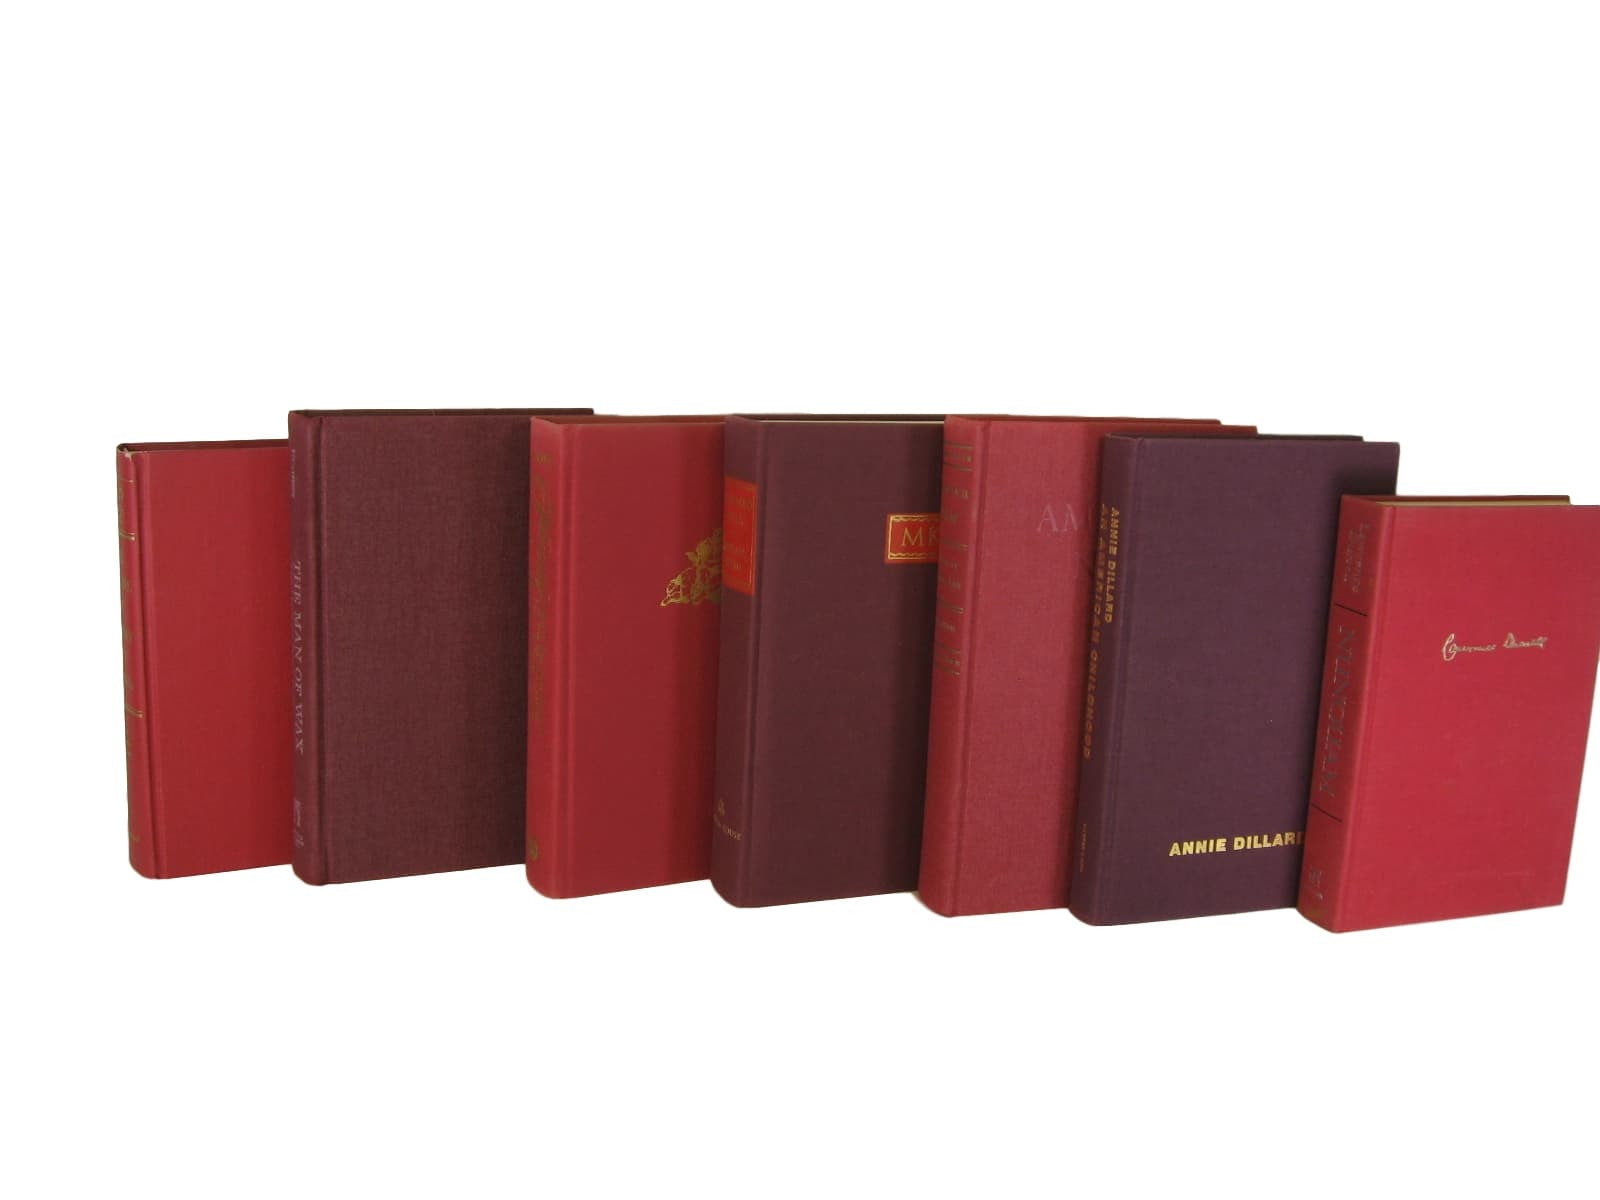 Red Burgundy Maroon Vintage Book Decor, S/7 - Decades of Vintage